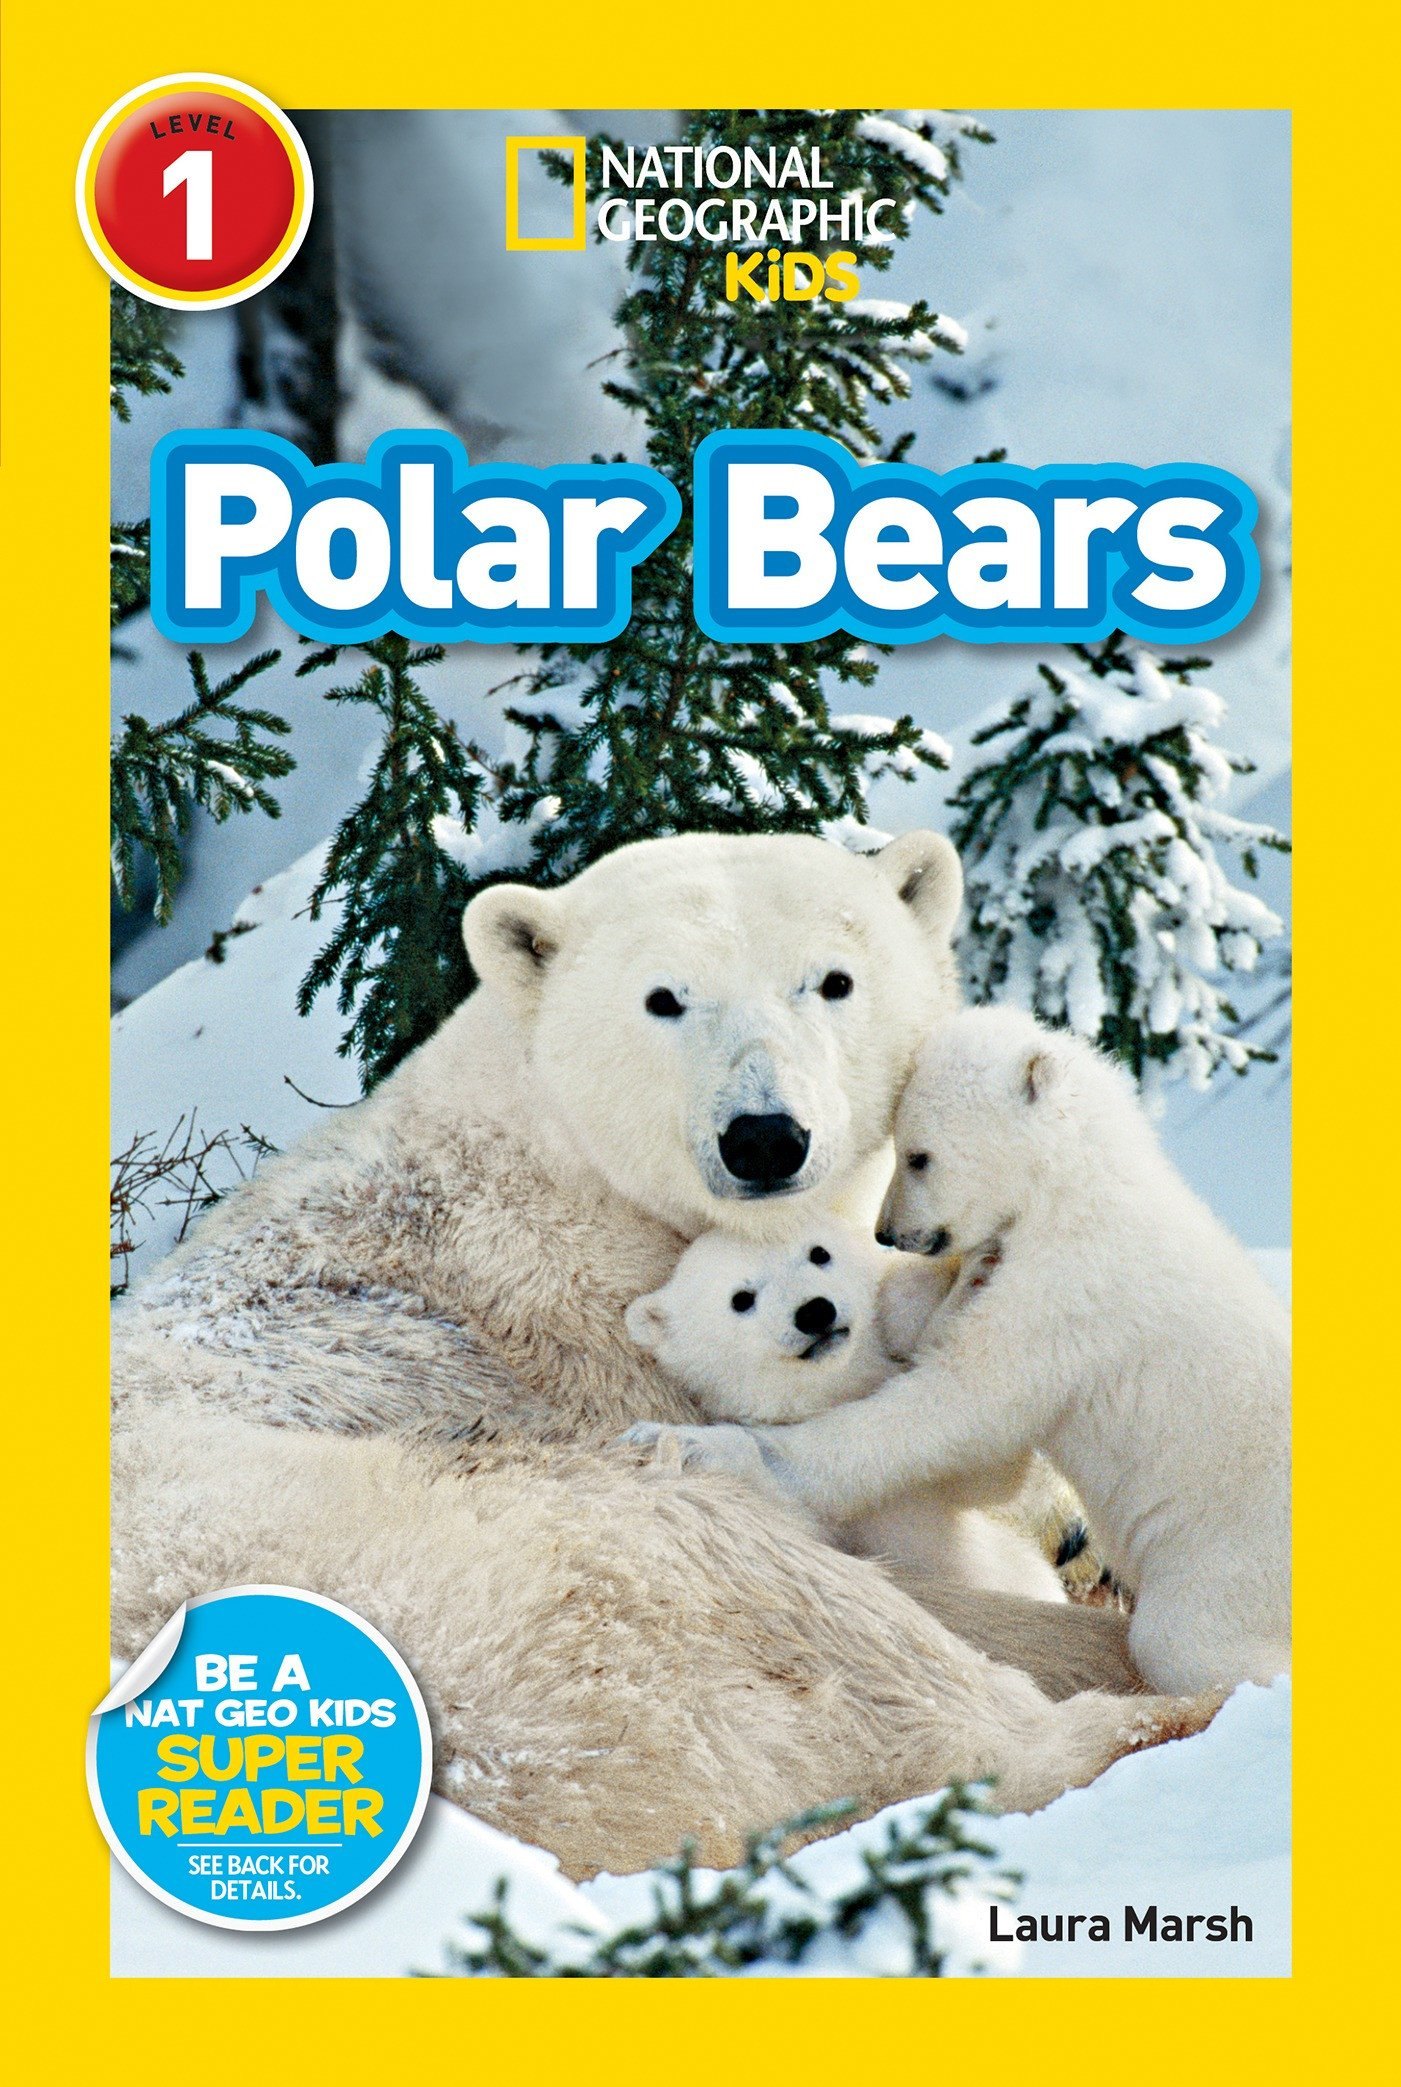 Polar Bear Worksheets Kindergarten Polar Bears National Geographic Kids Printables Classroom